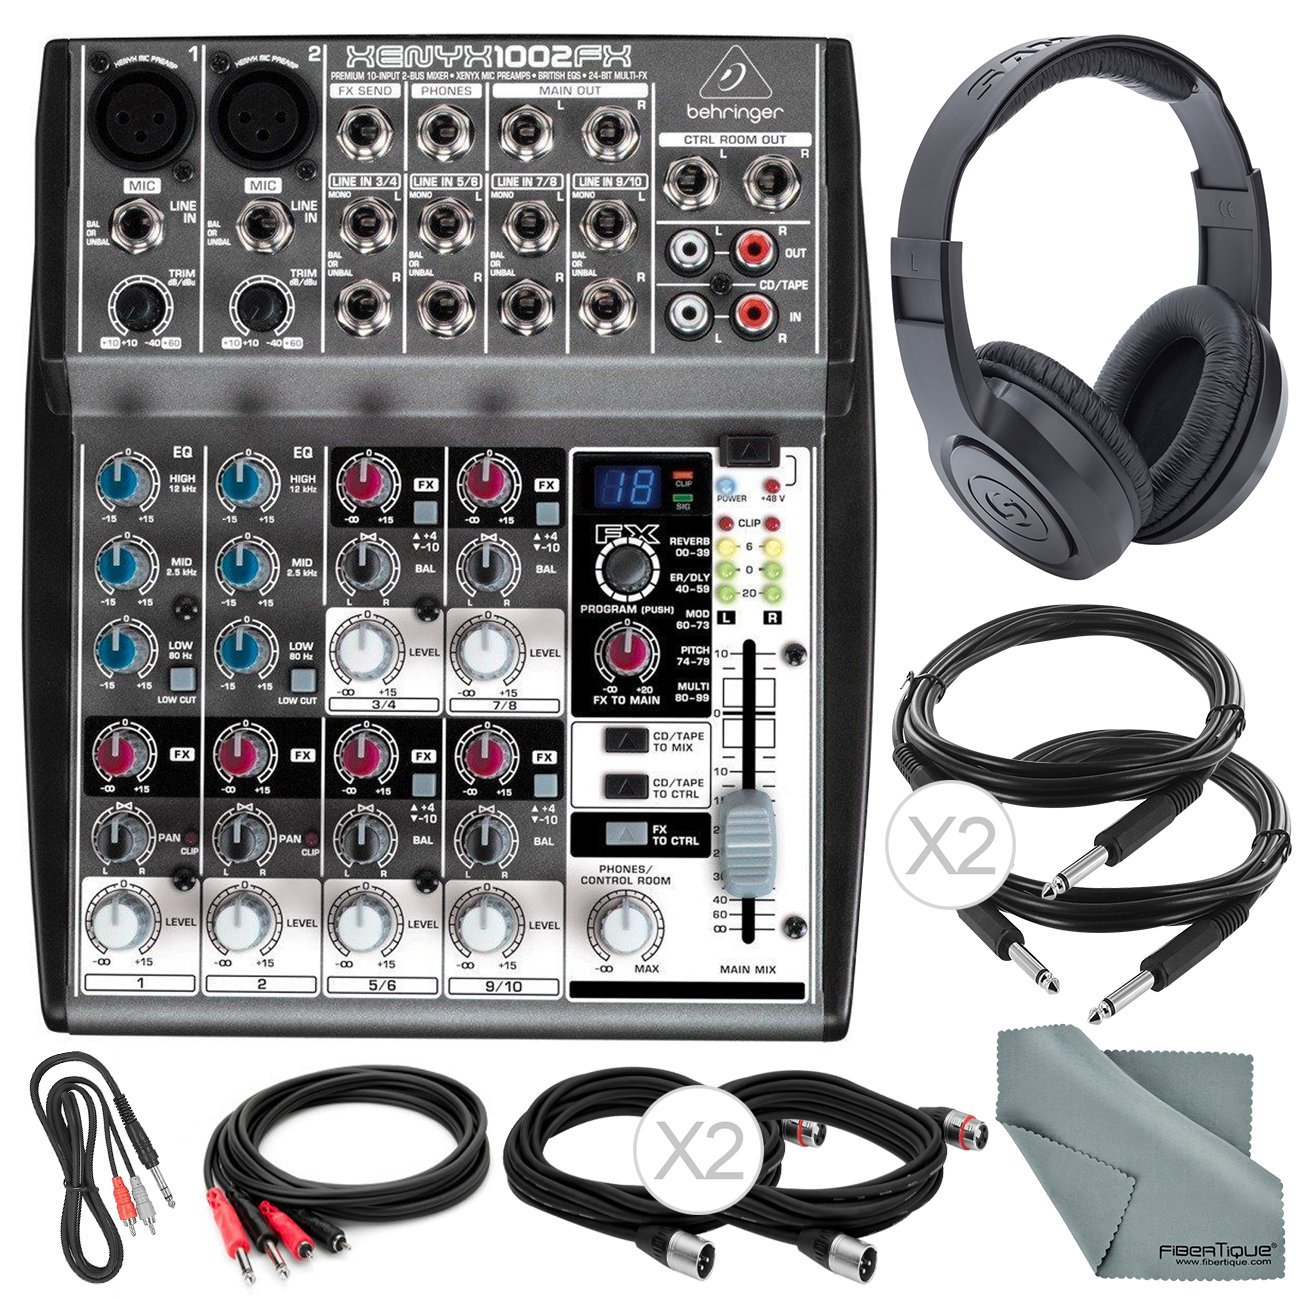 Photo Savings Behringer XENYX 1002FX 10-Channel Audio Mixer with Effects Processor and Accessory Bundle w/ 6X Cables + Headphones + Fibertique Cloth